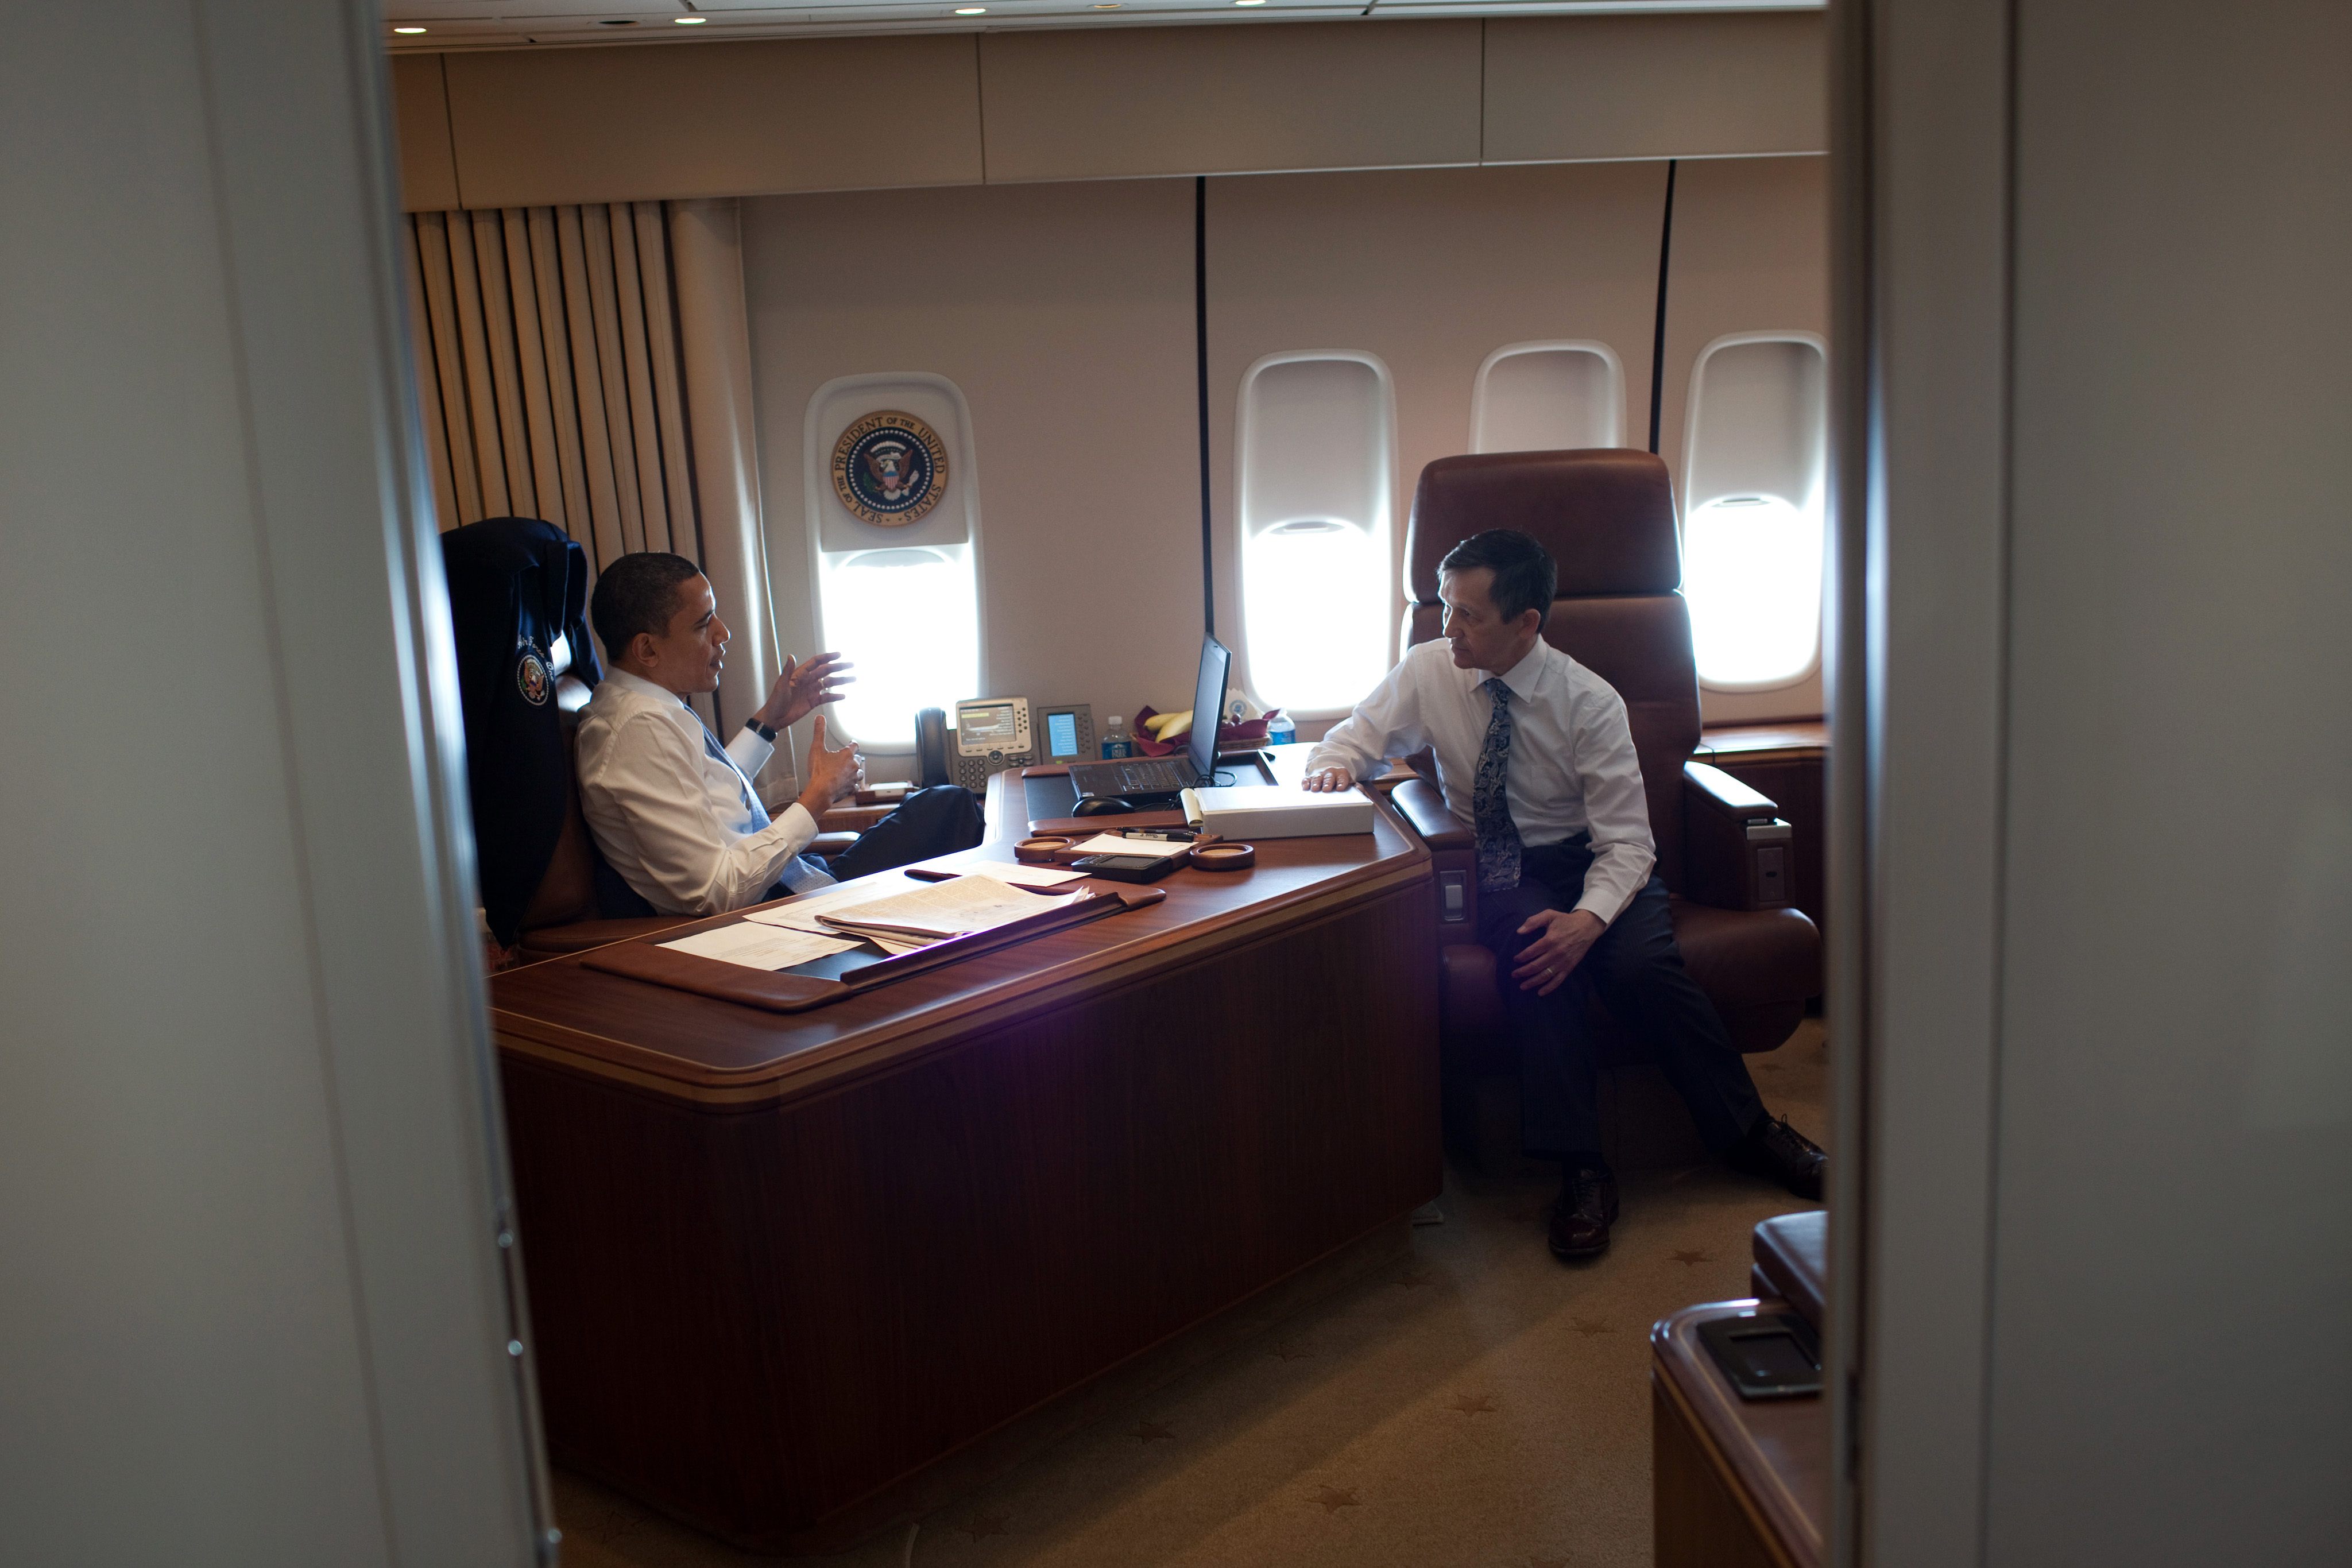 air force 1 office. File:Air Force One Office Obama Kucinich.jpg Air 1